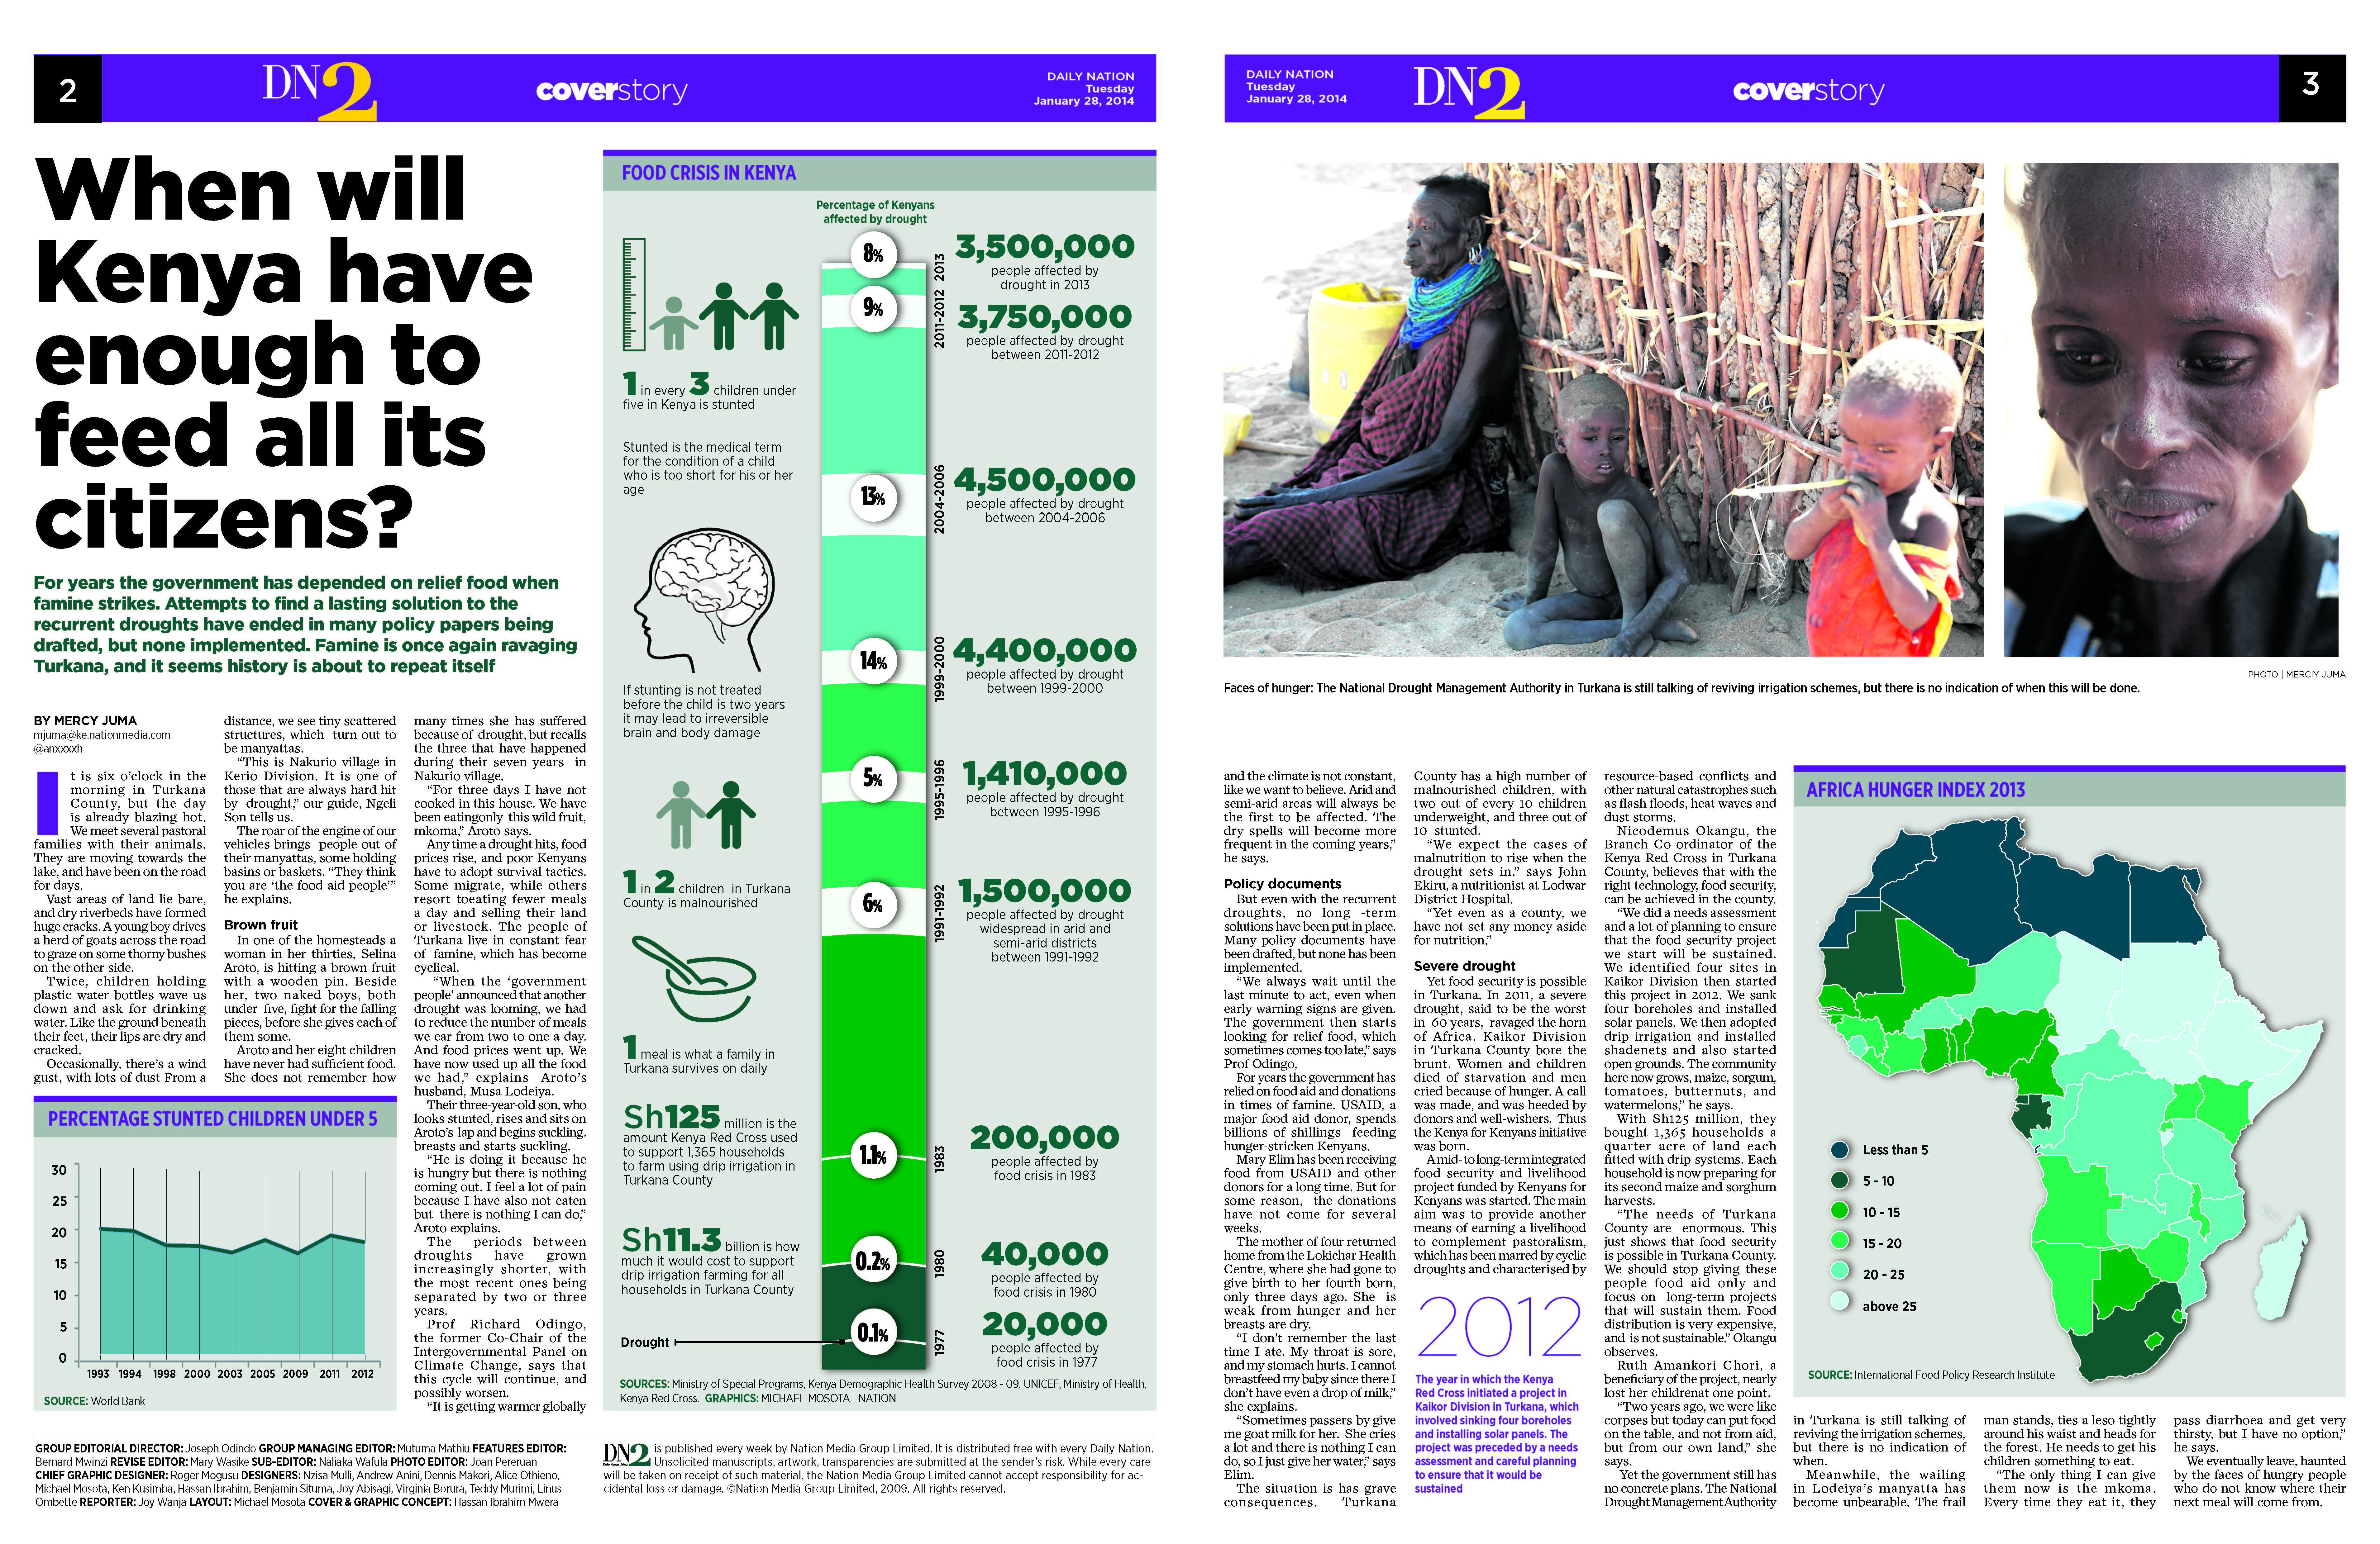 Figure 45.2. a print version of mercy Juma's television special on food security in Turkana. Source: Internews.